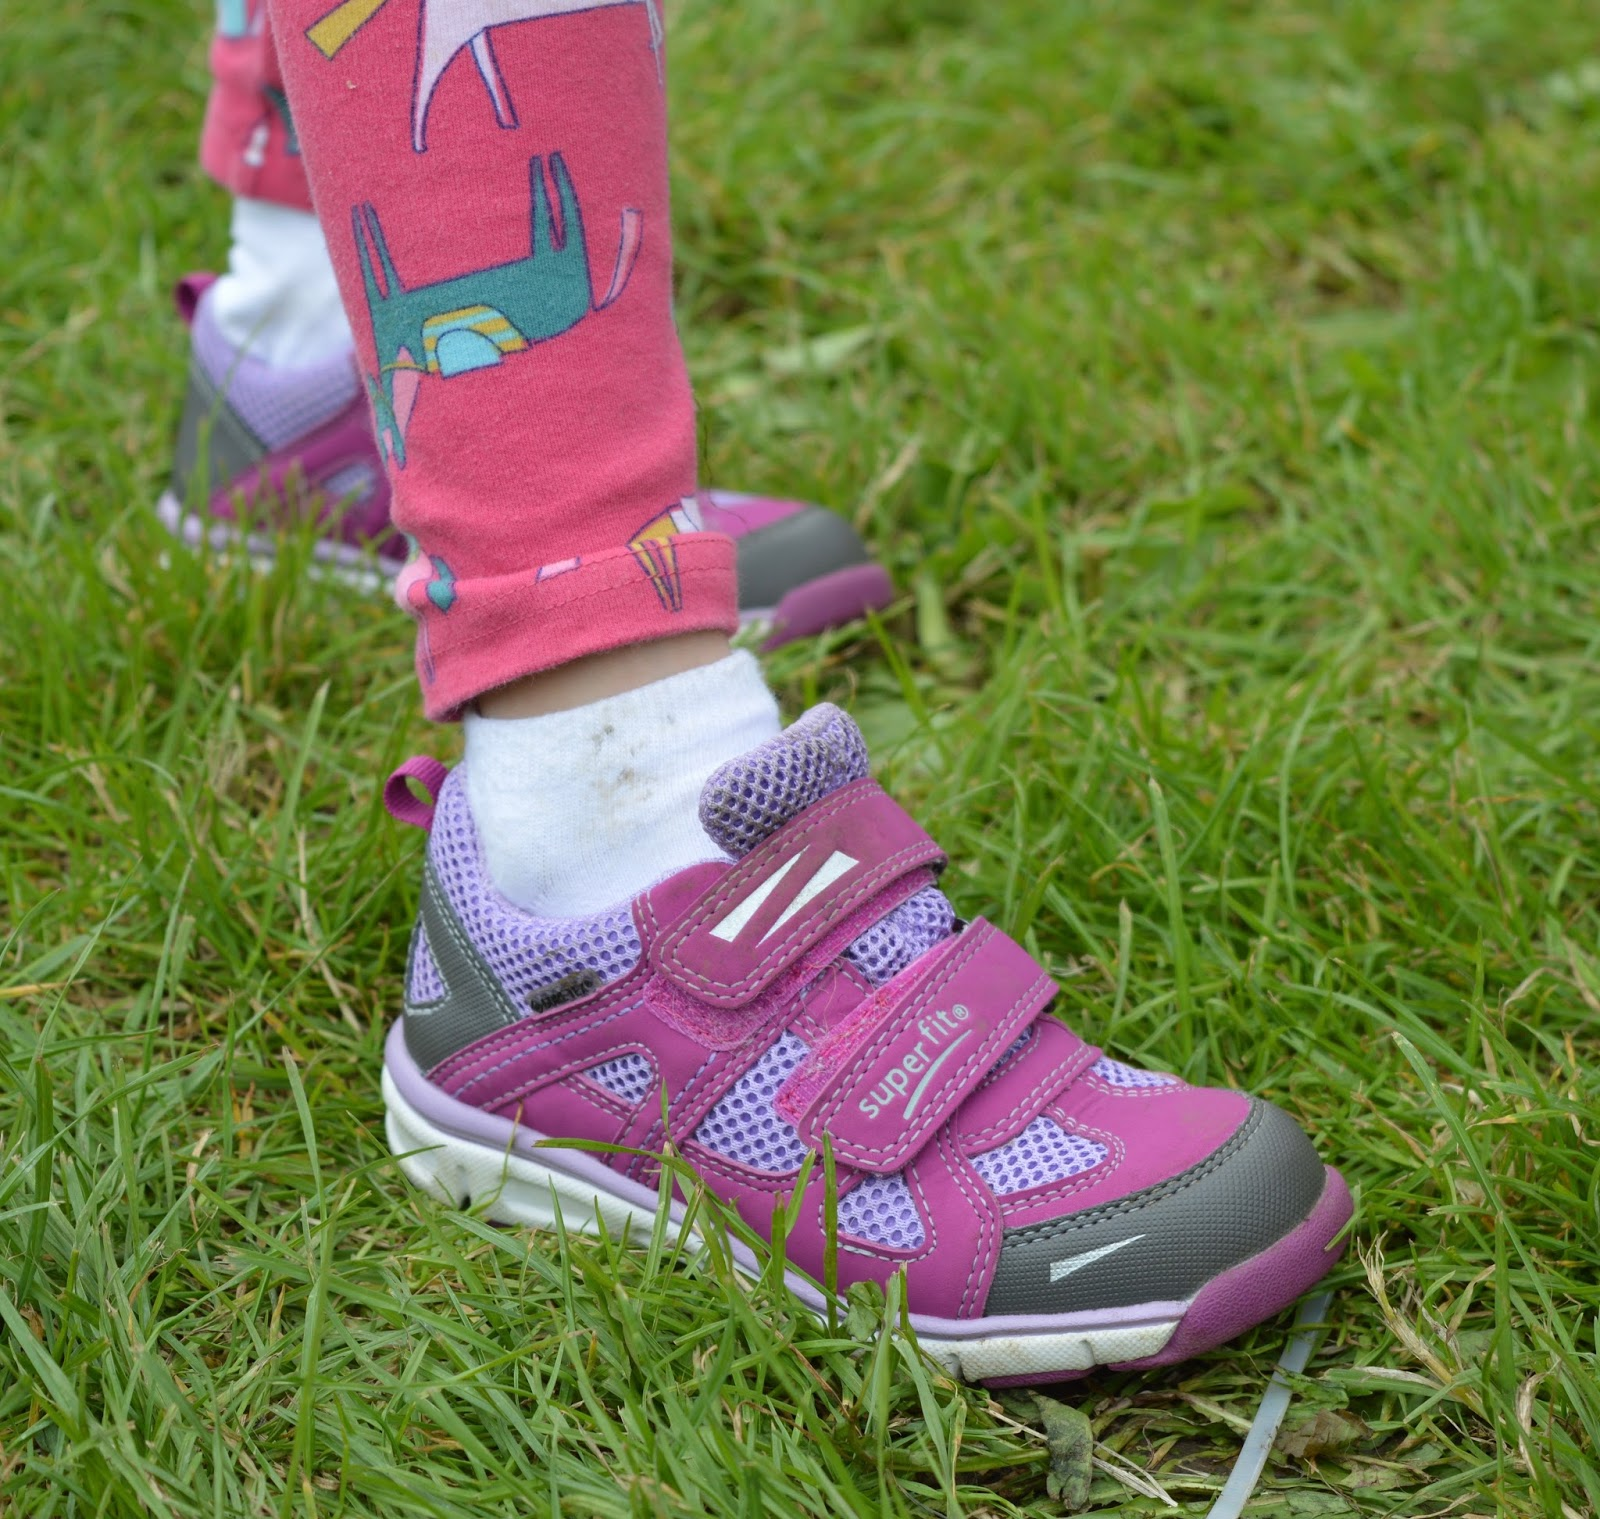 GORE-TEX shoes - alternative footwear for children at festivals